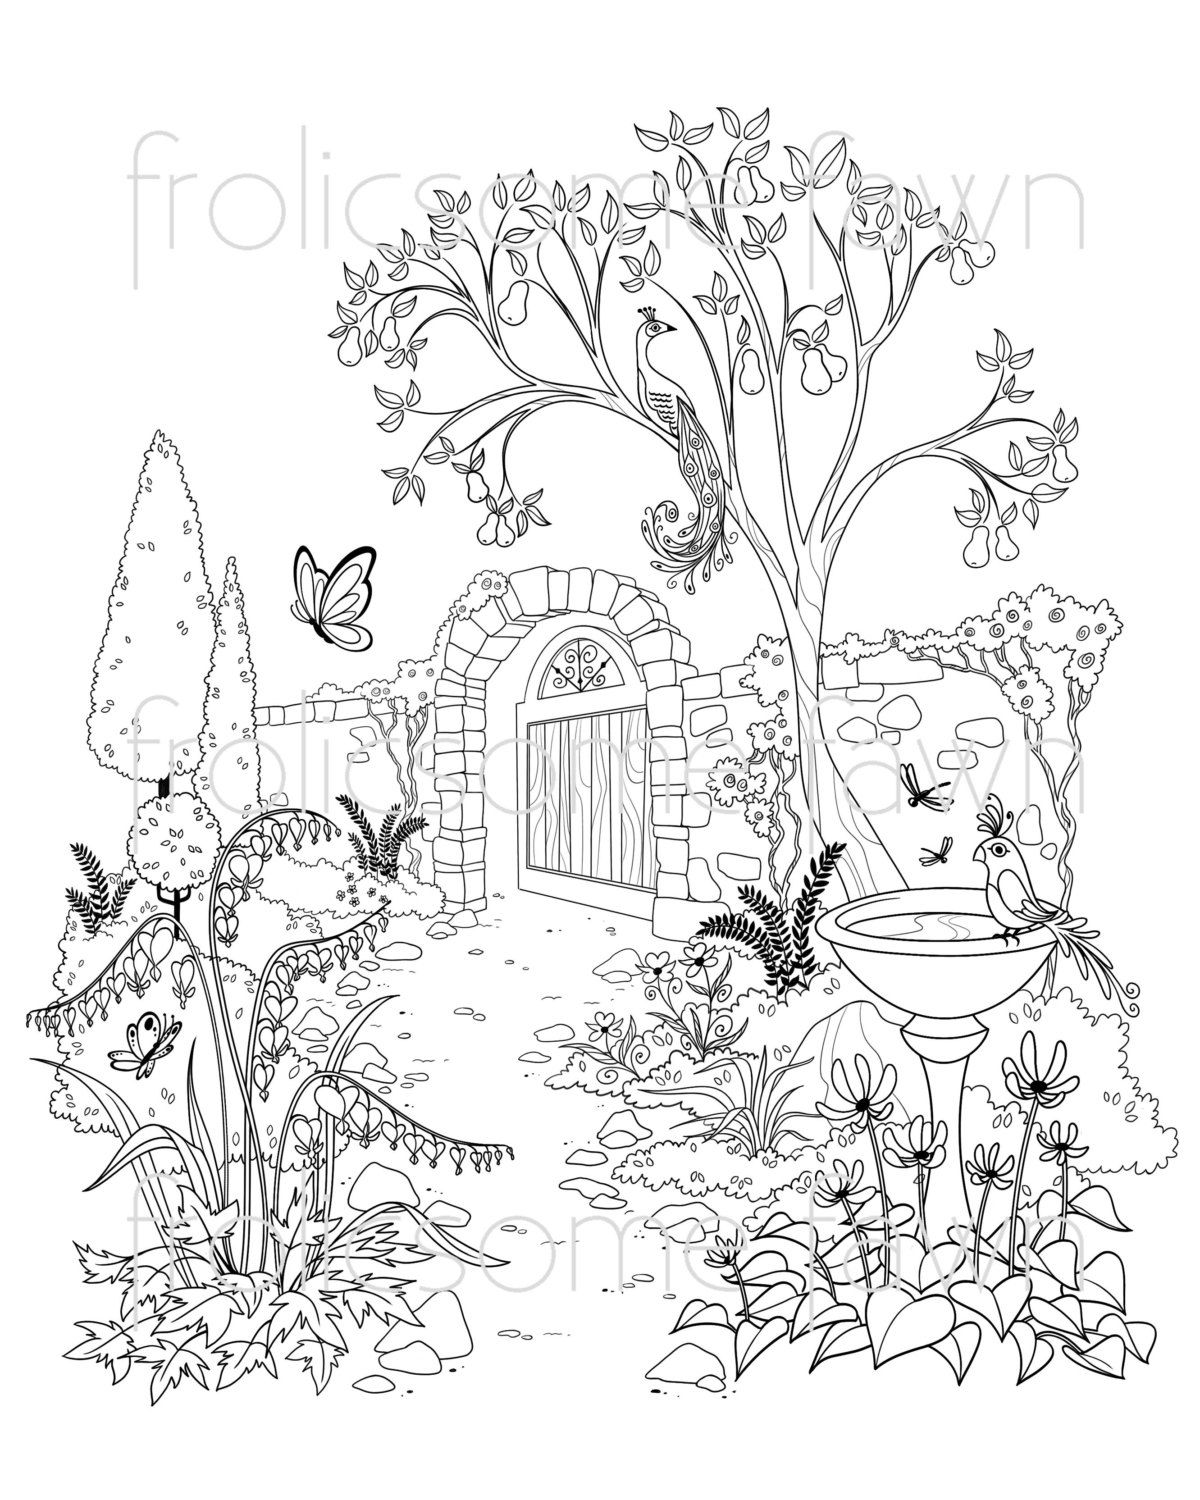 Garden Coloring Page For Adults And Children Fantasy Garden Etsy Garden Coloring Pages Coloring Pages Coloring Books